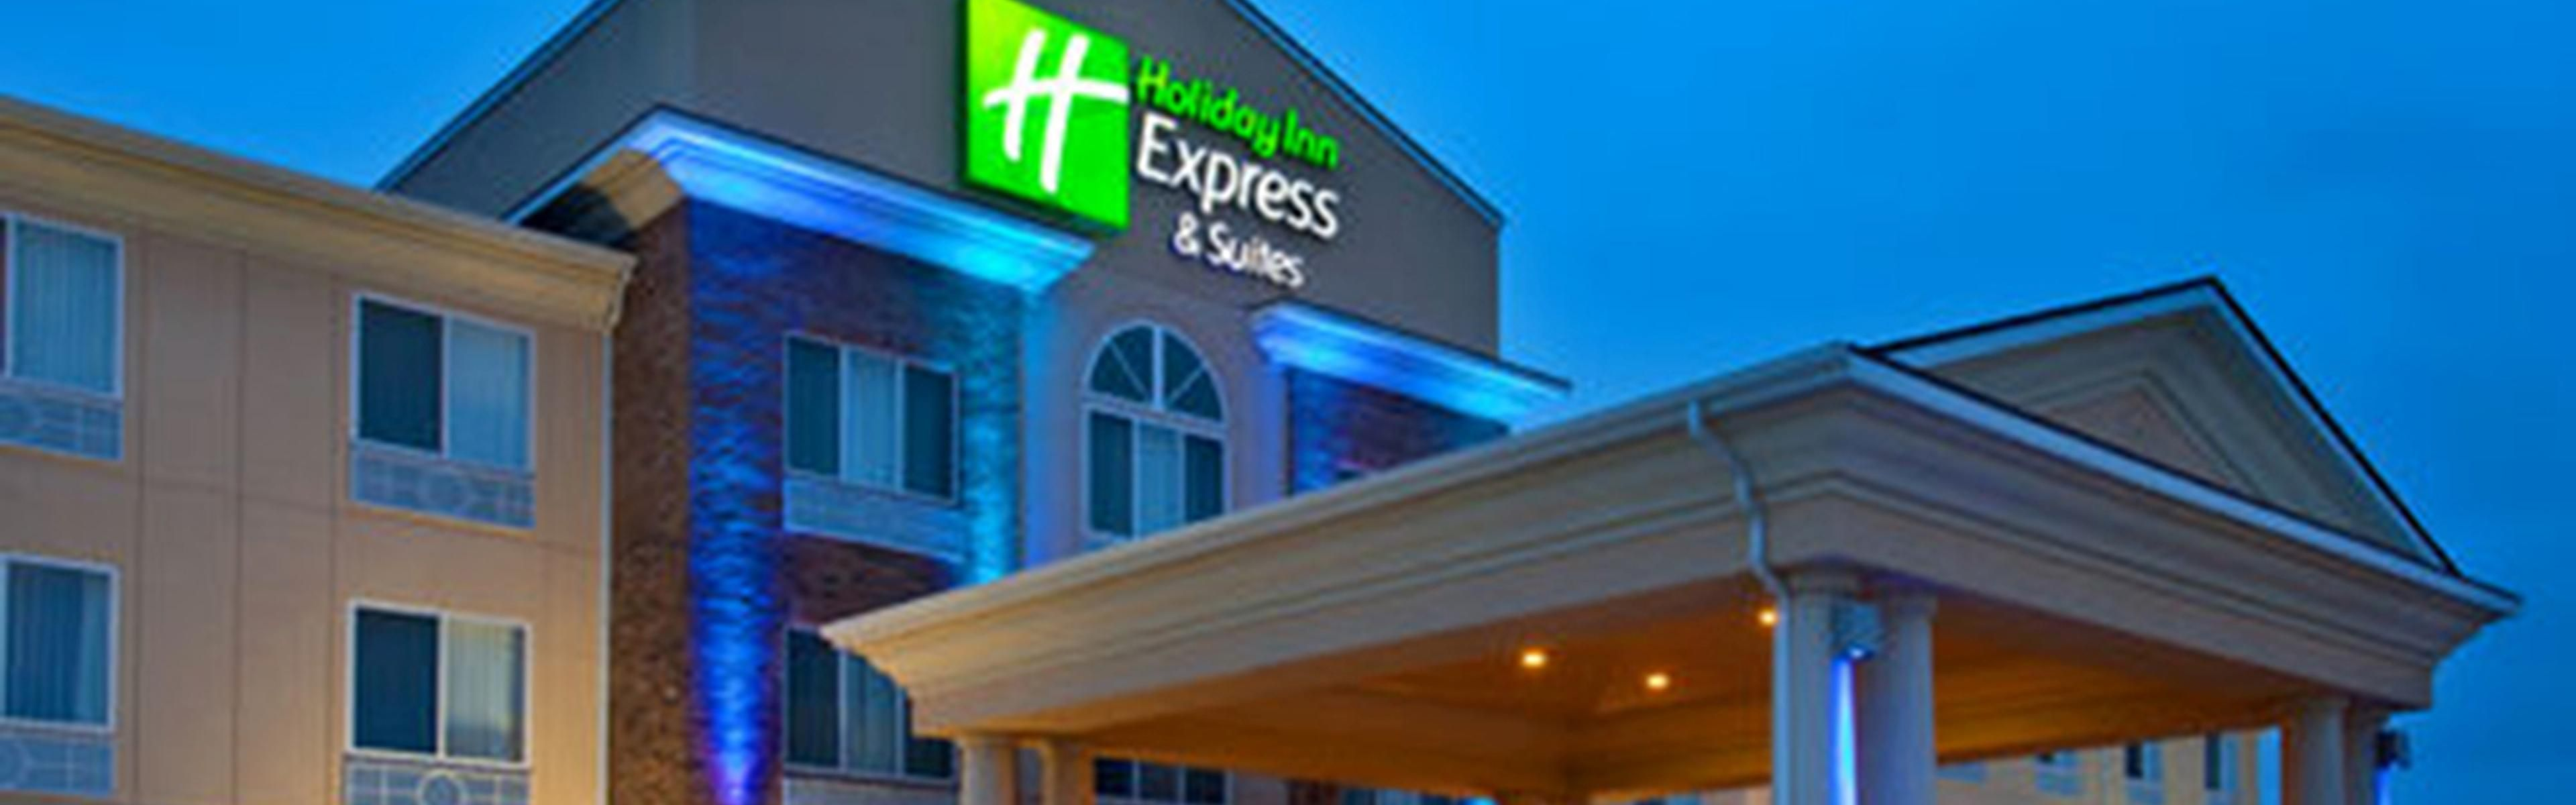 Holiday Inn Express & Suites Emporia Northwest image 0